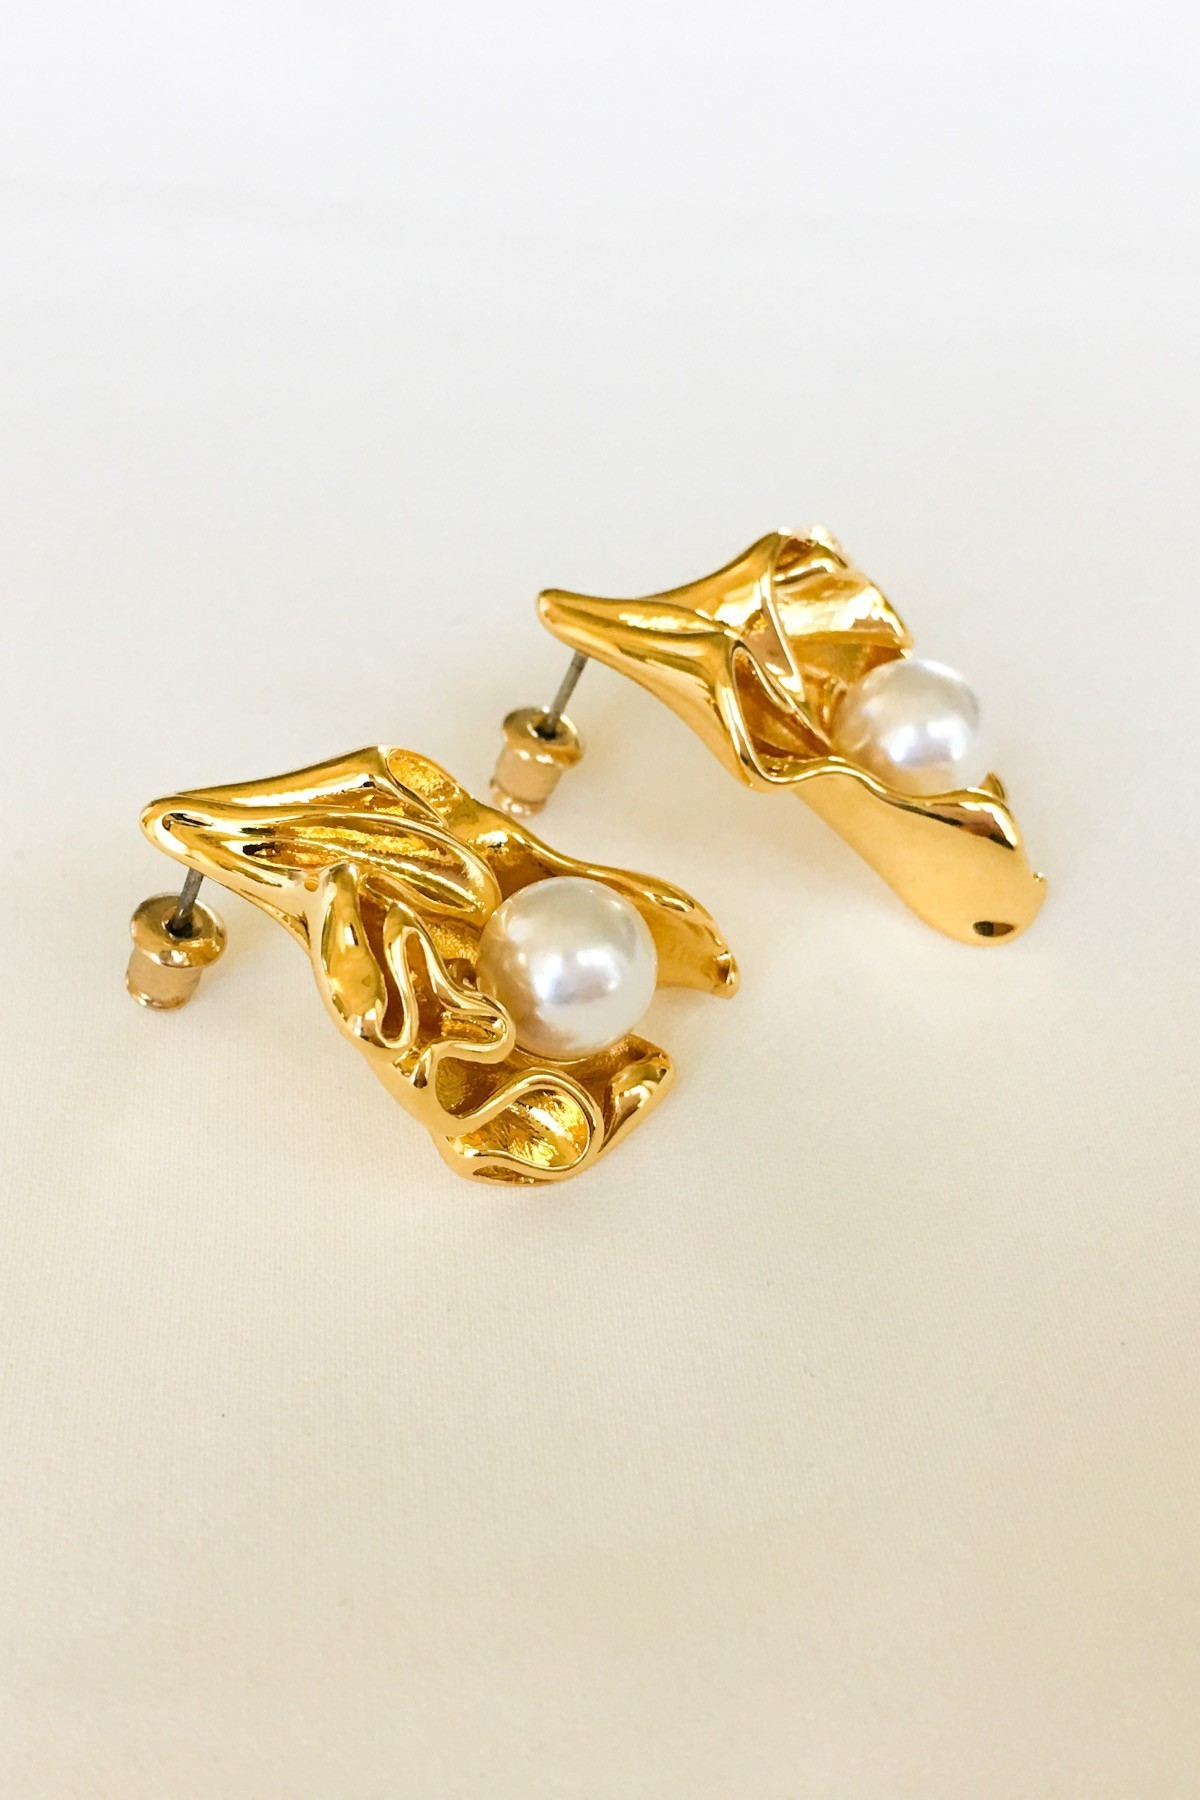 SKYE San Francisco SF California shop ethical sustainable modern minimalist luxury women French Parisian chic jewelry Spring 2020 Marseille 18K Gold Pearl Earrings 4